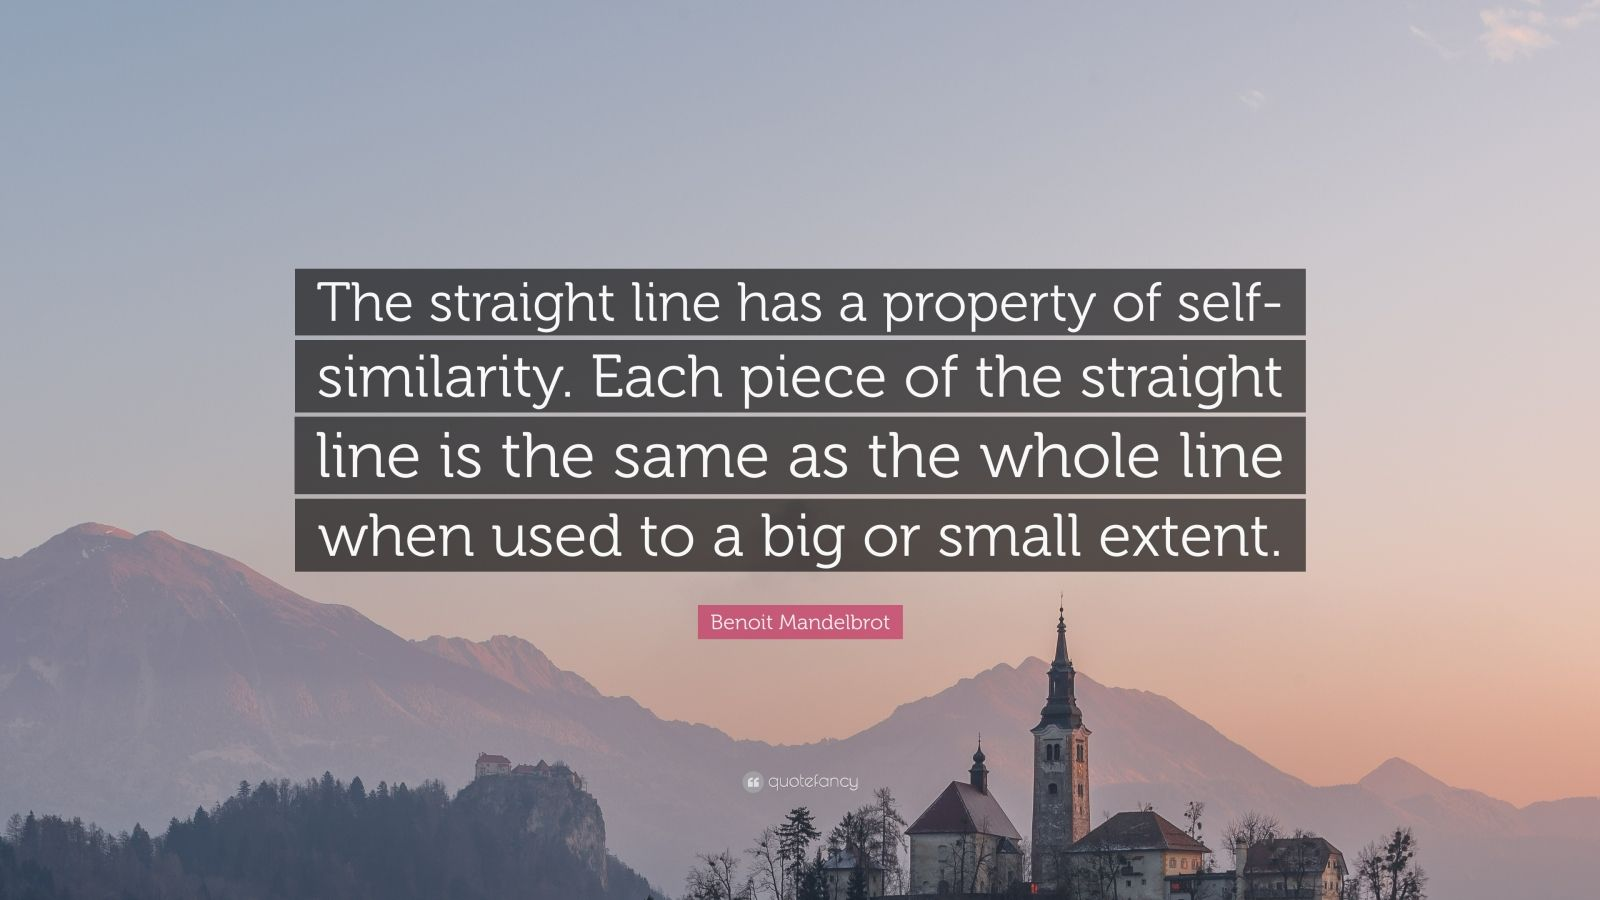 """Benoit Mandelbrot Quote: """"The straight line has a property of self-similarity. Each piece of the straight line is the same as the whole line when used to a big or small extent."""""""